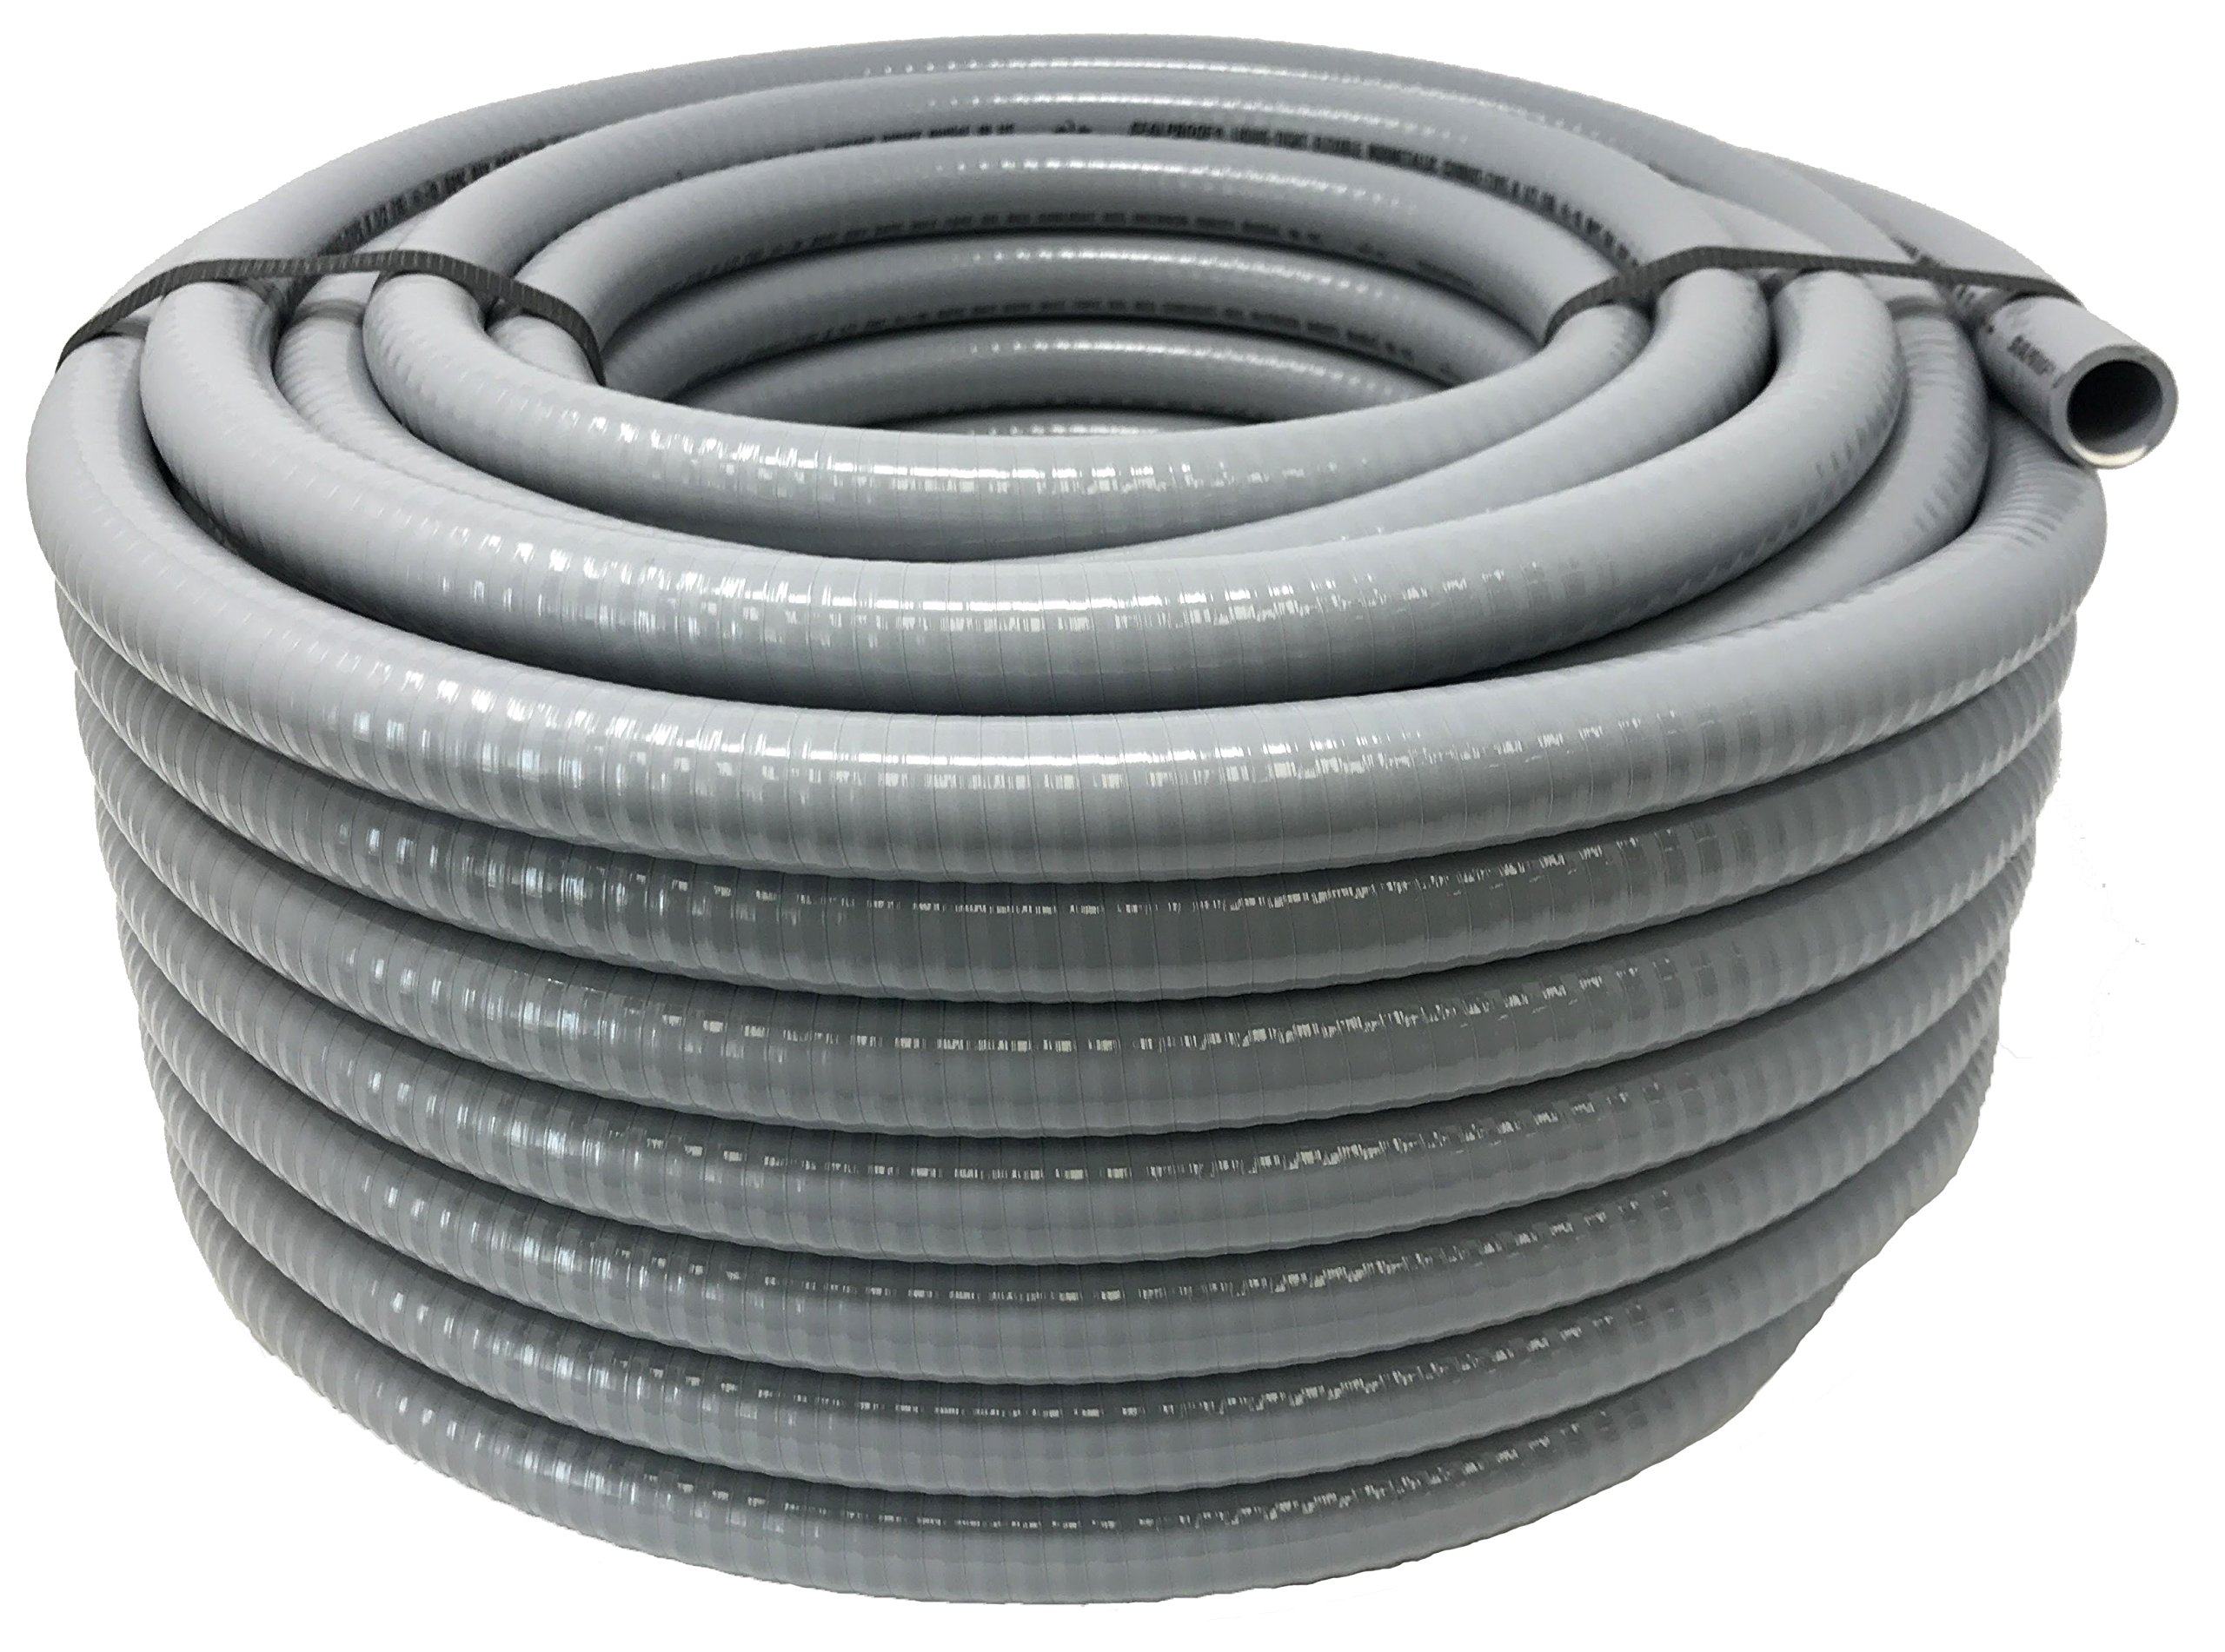 Sealproof 1/2-Inch Flexible Non-metallic Liquid-Tight Electrical Conduit Type B, UL Listed, 1/2'' Dia, 100 Feet